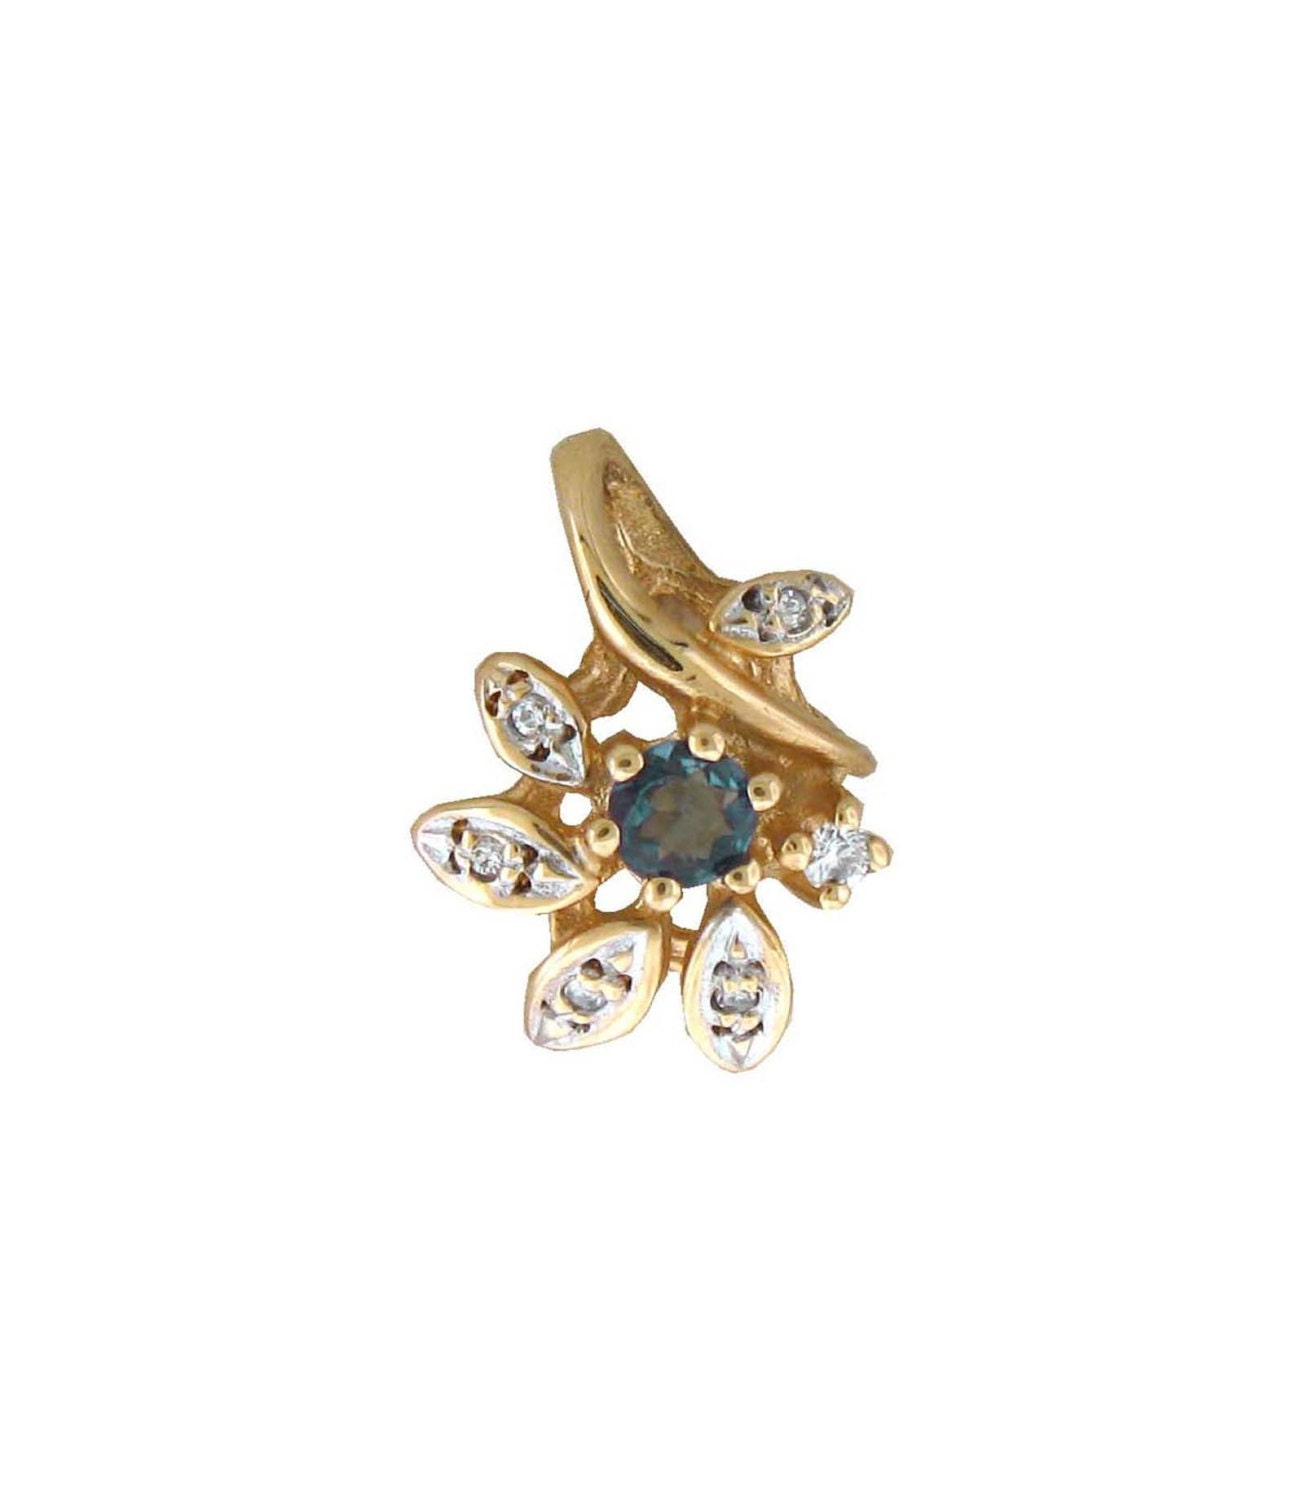 NATURAL Alexandrite Diamond Pendant In 14K Yellow Gold With